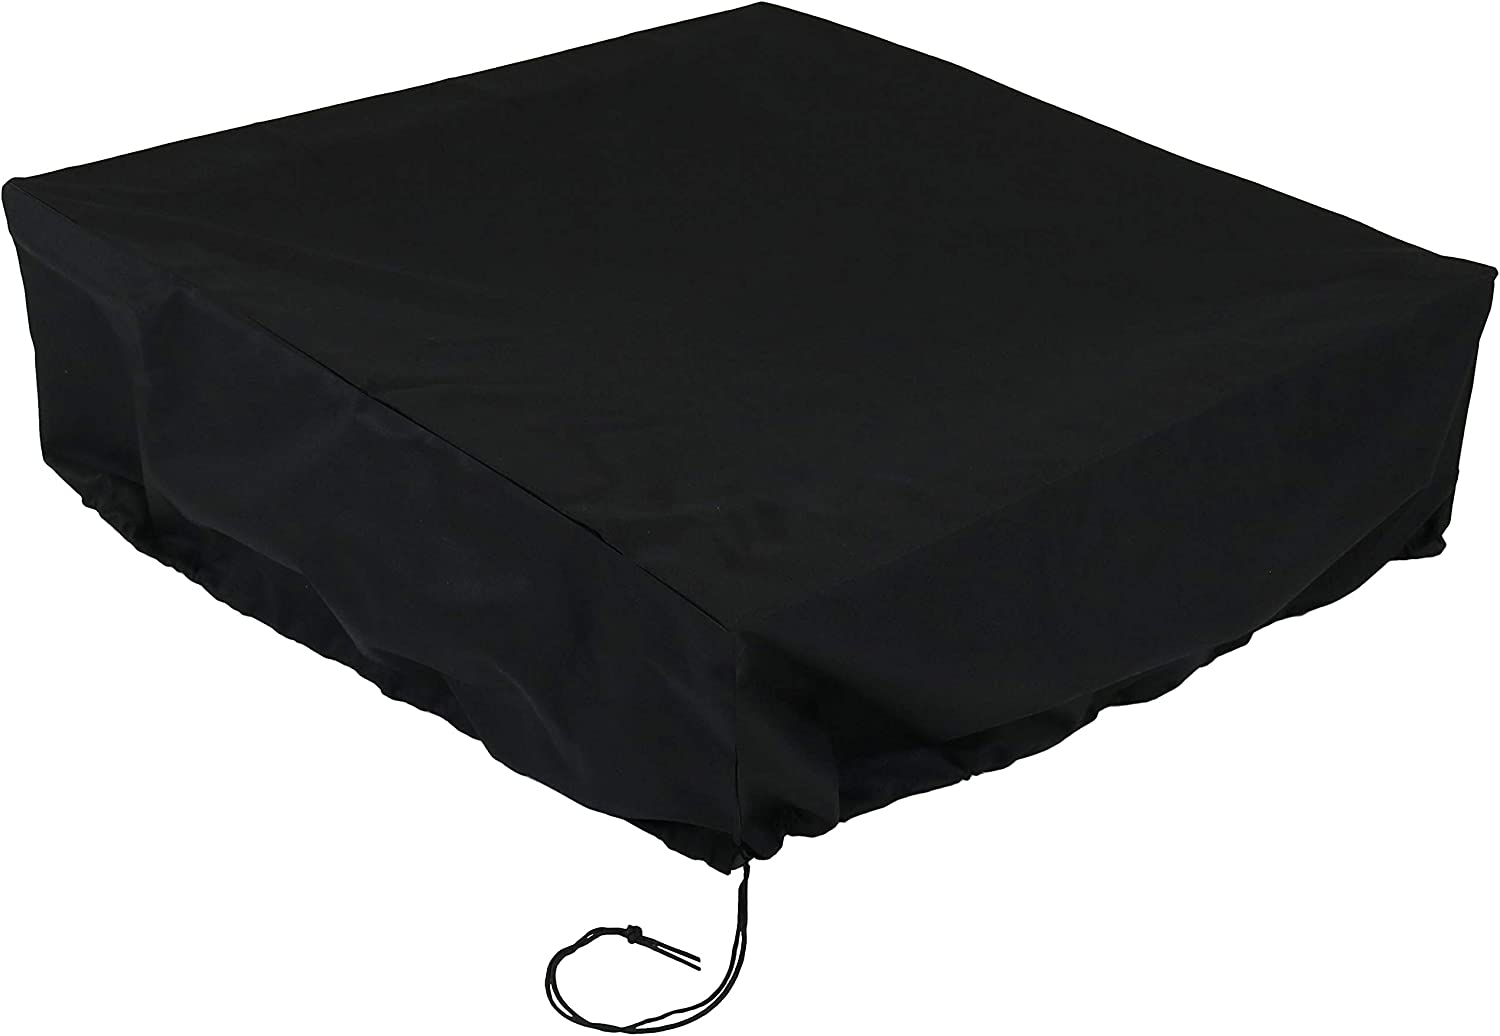 Sunnydaze Fire Pit Bowl Cover - 48-Inch Square - Protective Patio Firepit Cover - Snug Fit with Drawstring & Toggle - Durable Polyester with PVC Backing - Weather Resistant